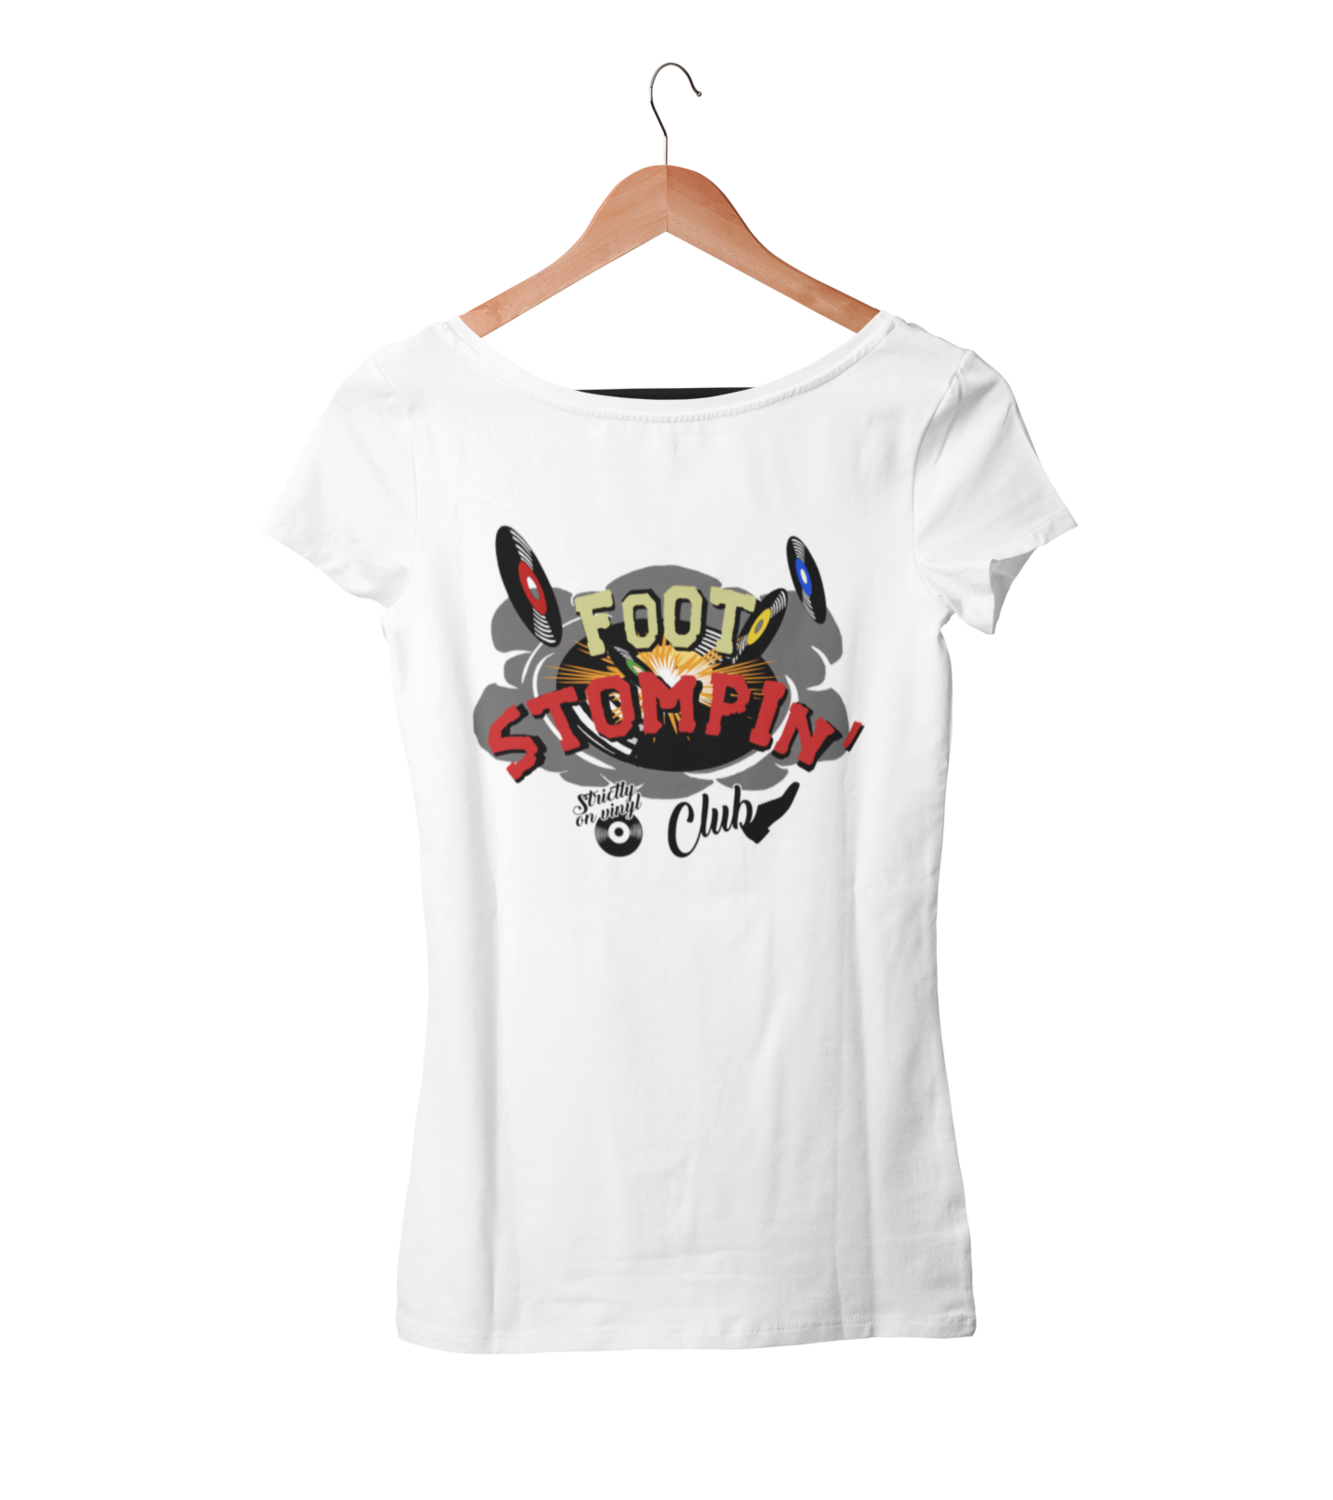 FOOT STOMPIN´ CLUB tshirt for WOMEN